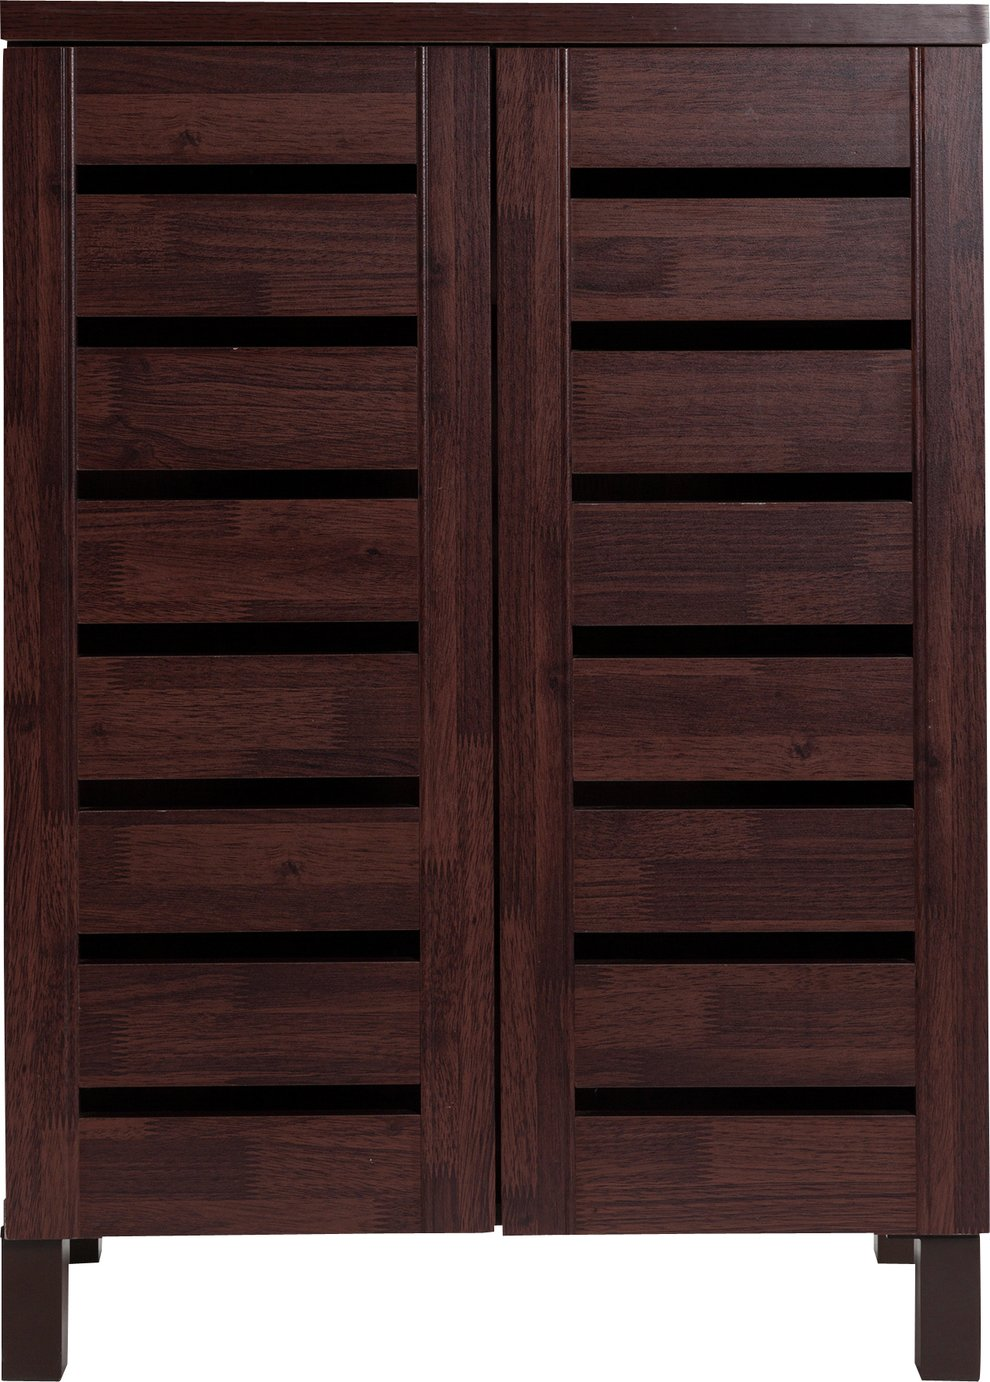 Argos Home Slatted Shoe Storage Cabinet - Mahogany Effect